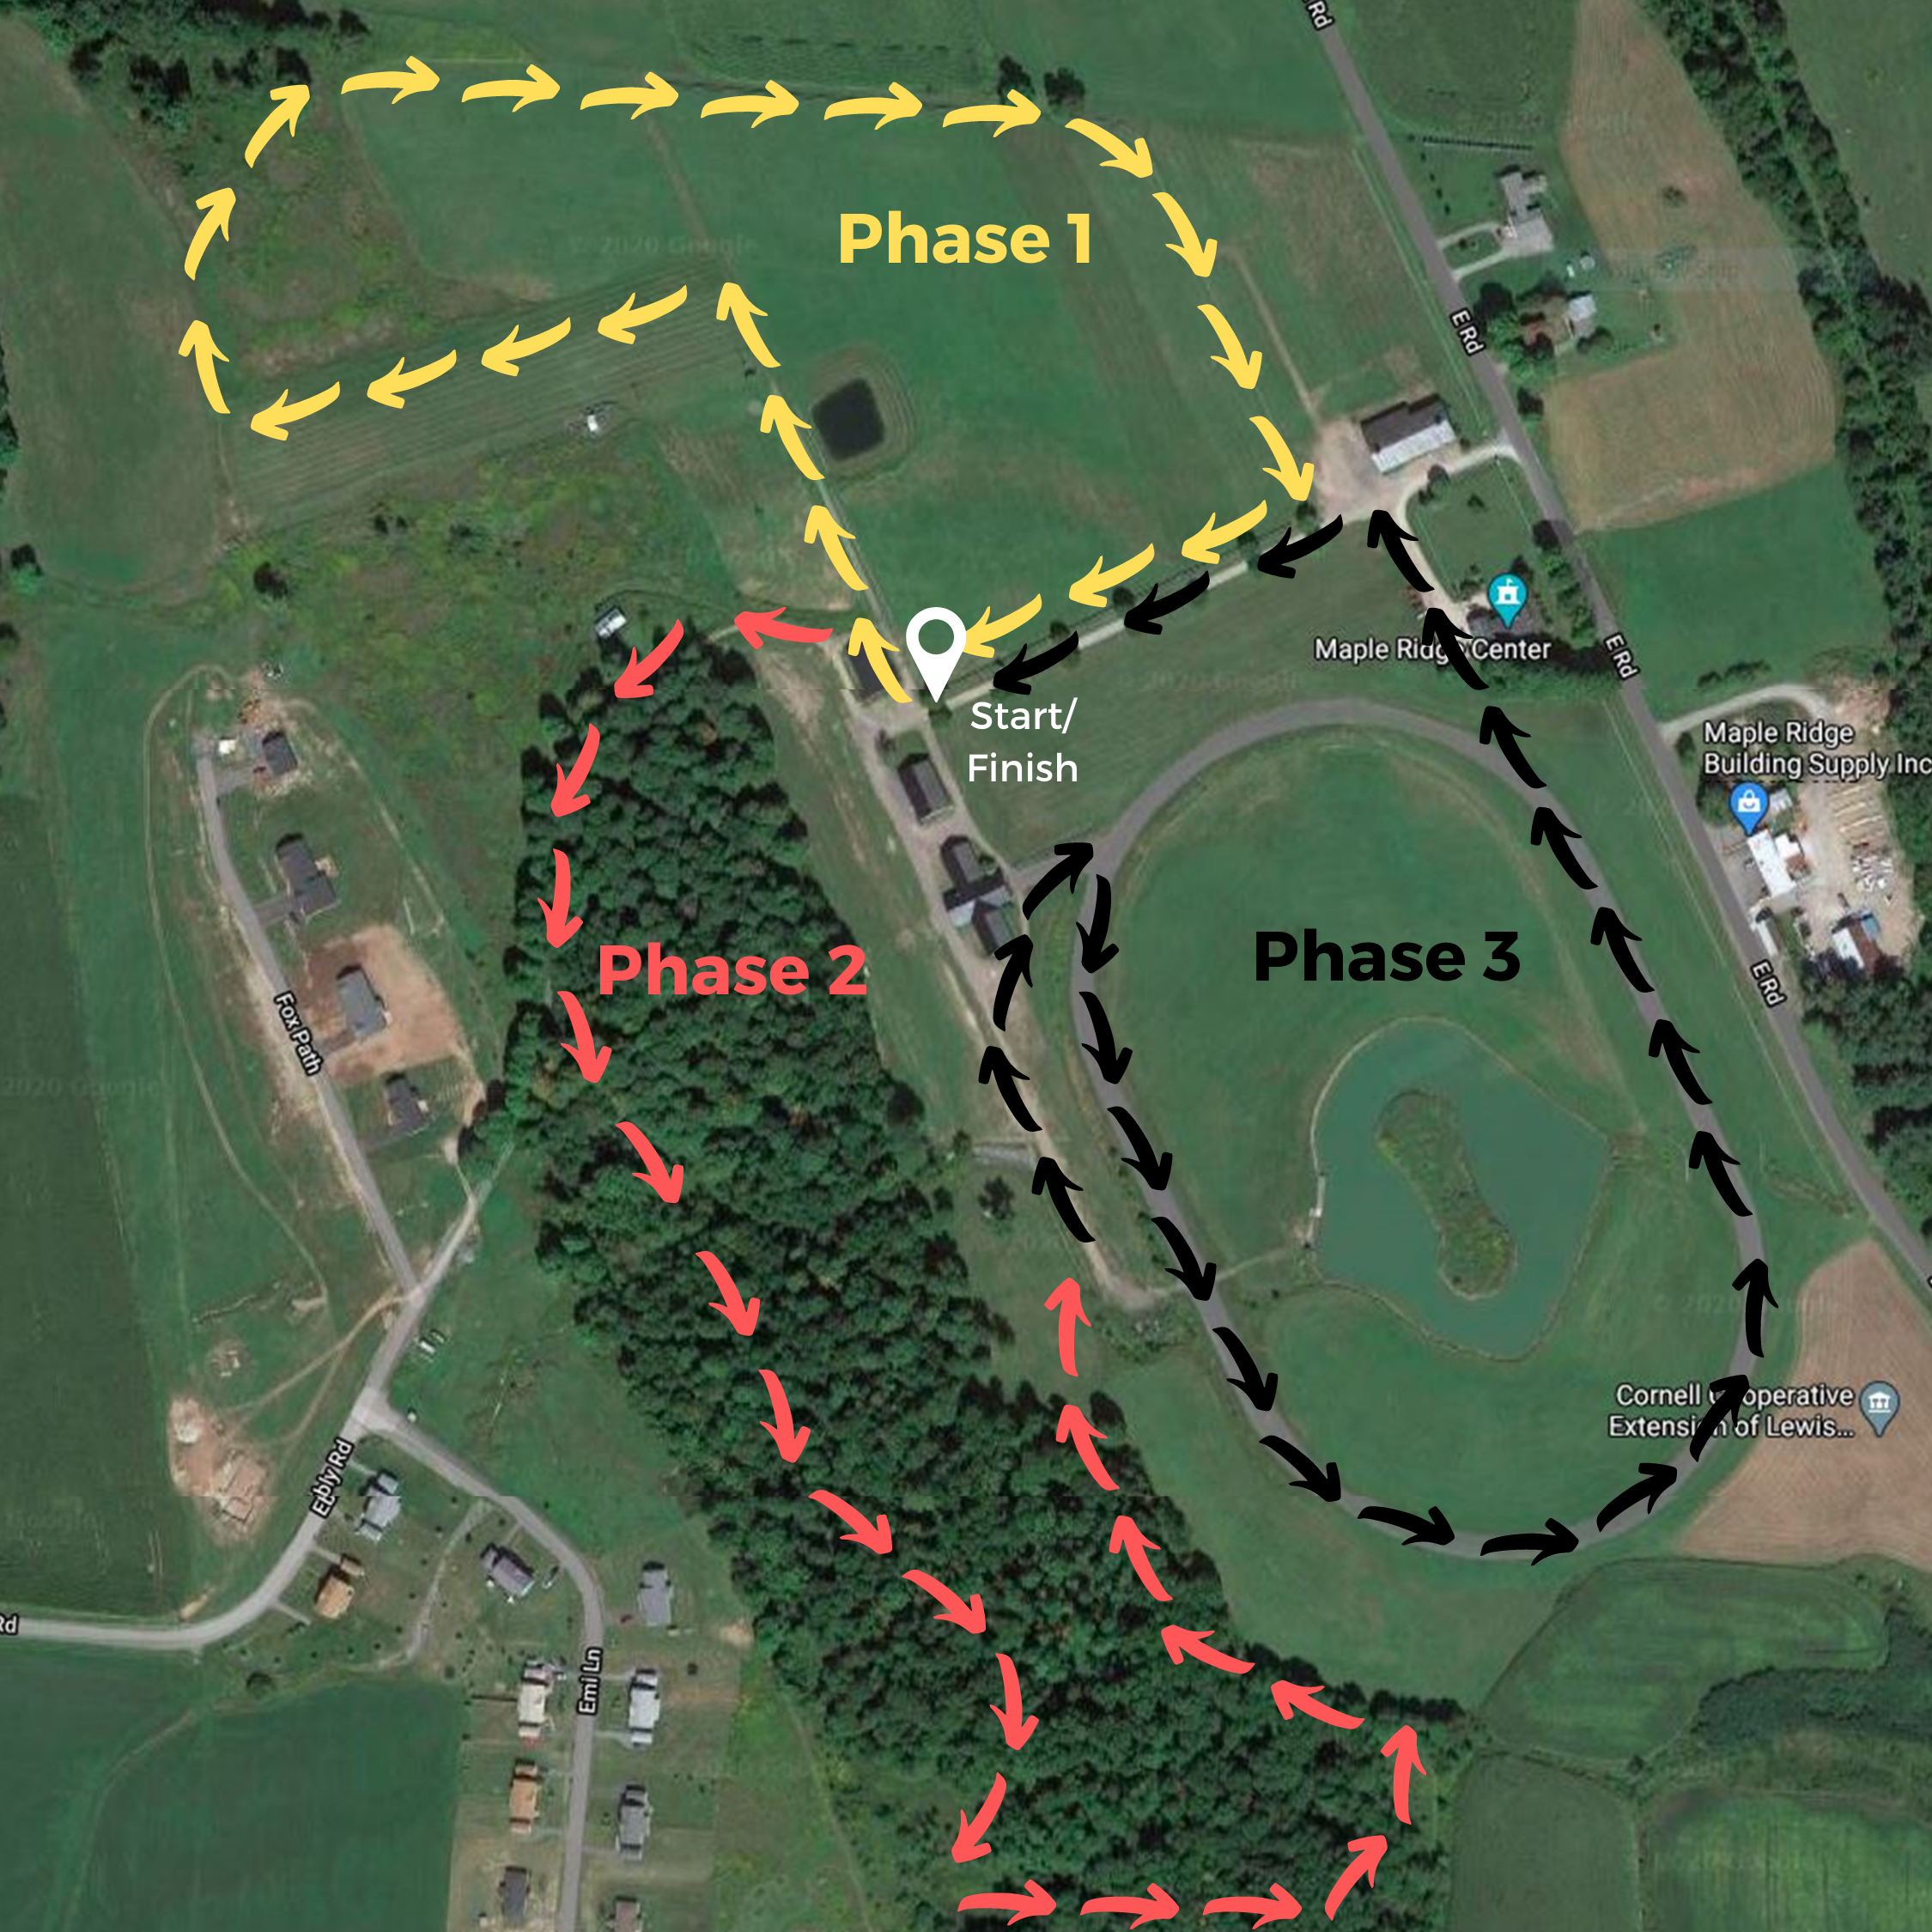 Map of the Rugged Run course at Maple Ridge Center in Lowville, NY